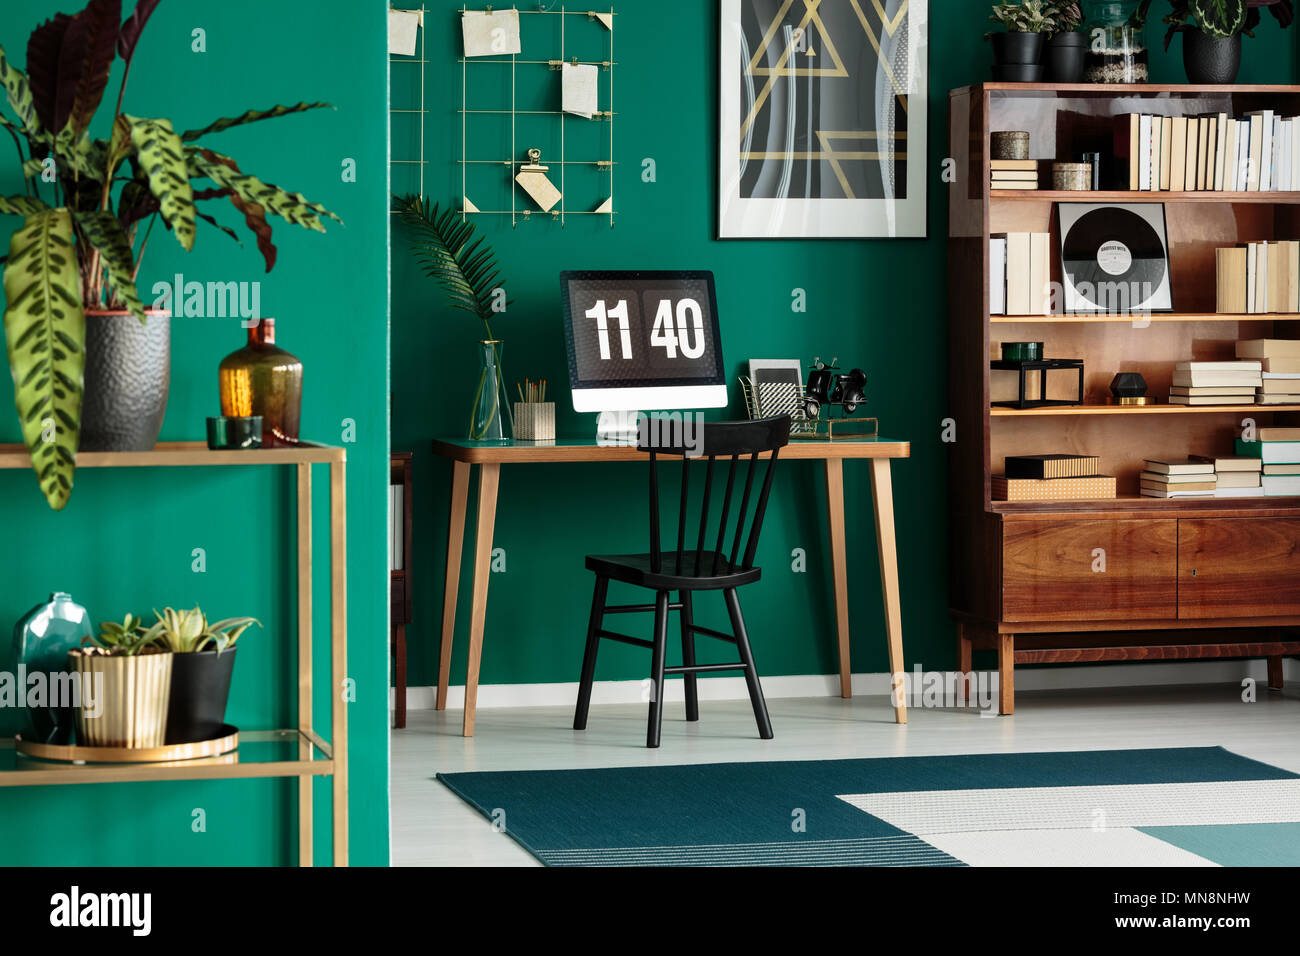 Black chair at desk with desktop computer in green home office interior with wooden furniture - Stock Image